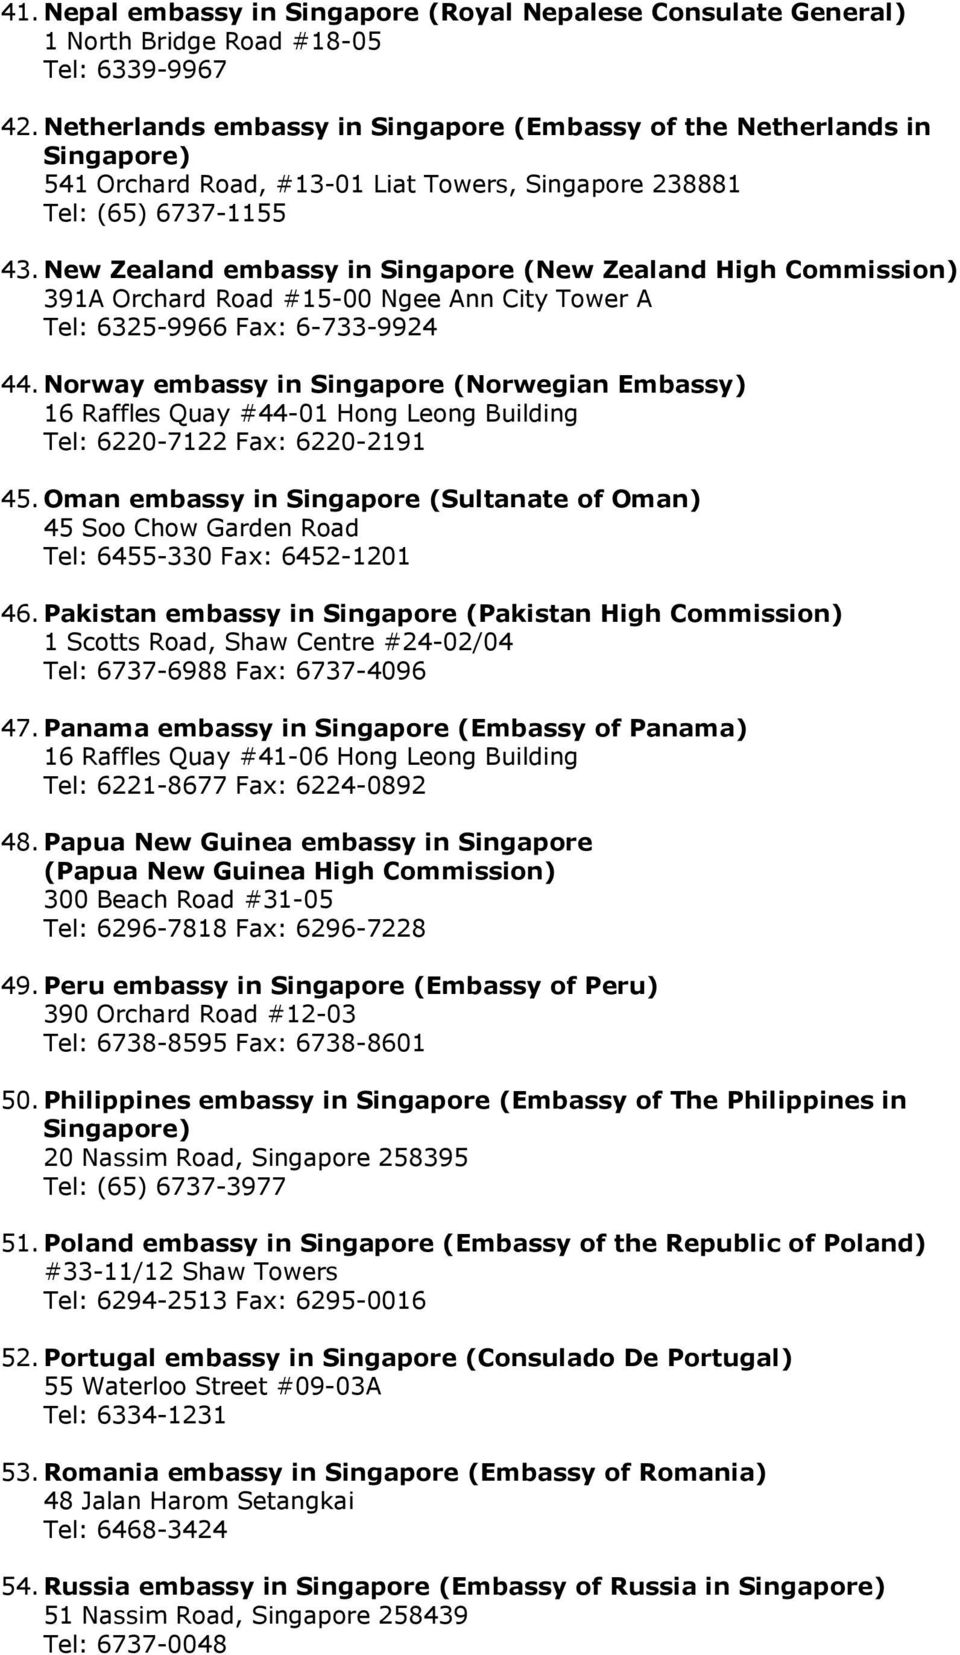 New Zealand embassy in Singapore (New Zealand High Commission) 391A Orchard Road #15-00 Ngee Ann City Tower A Tel: 6325-9966 Fax: 6-733-9924 44.